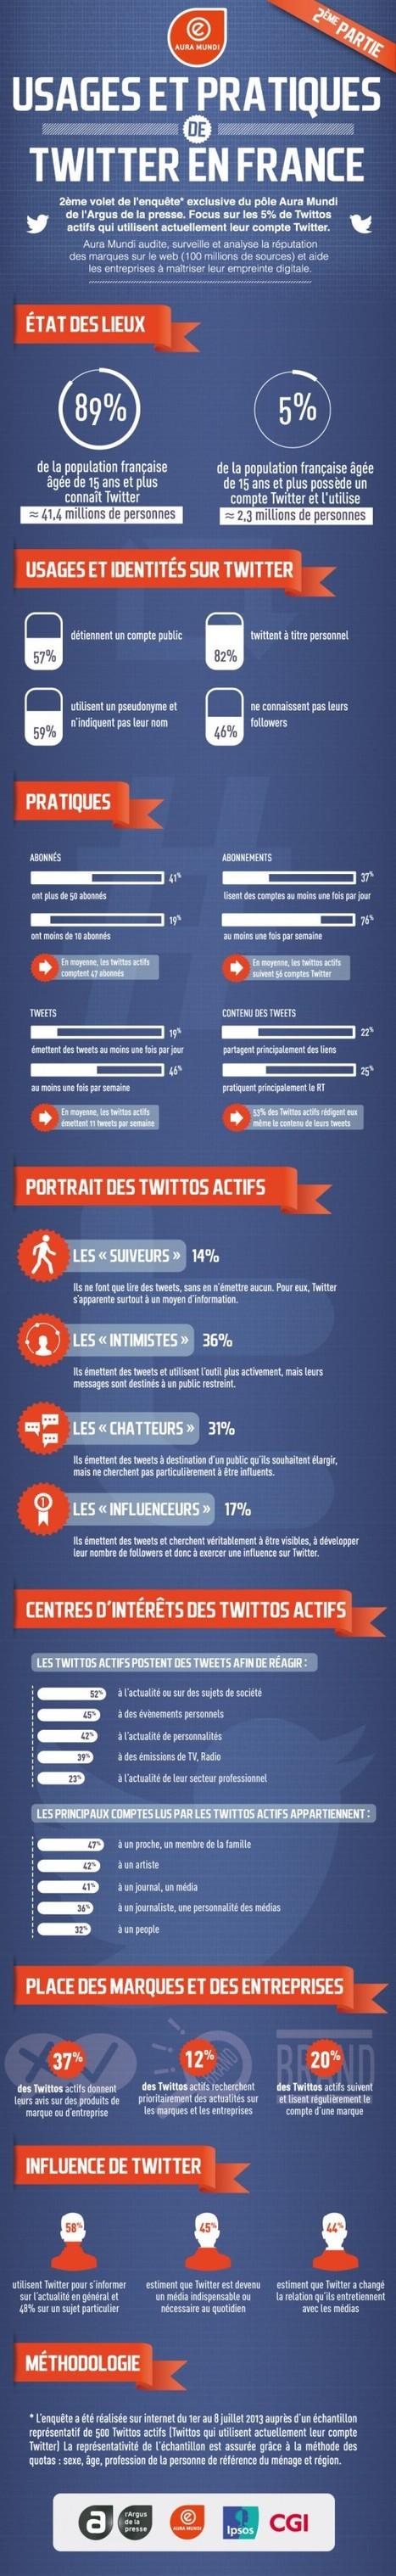 Profil et usages des utilisateurs Twitter en France | Infographies social media | Scoop.it